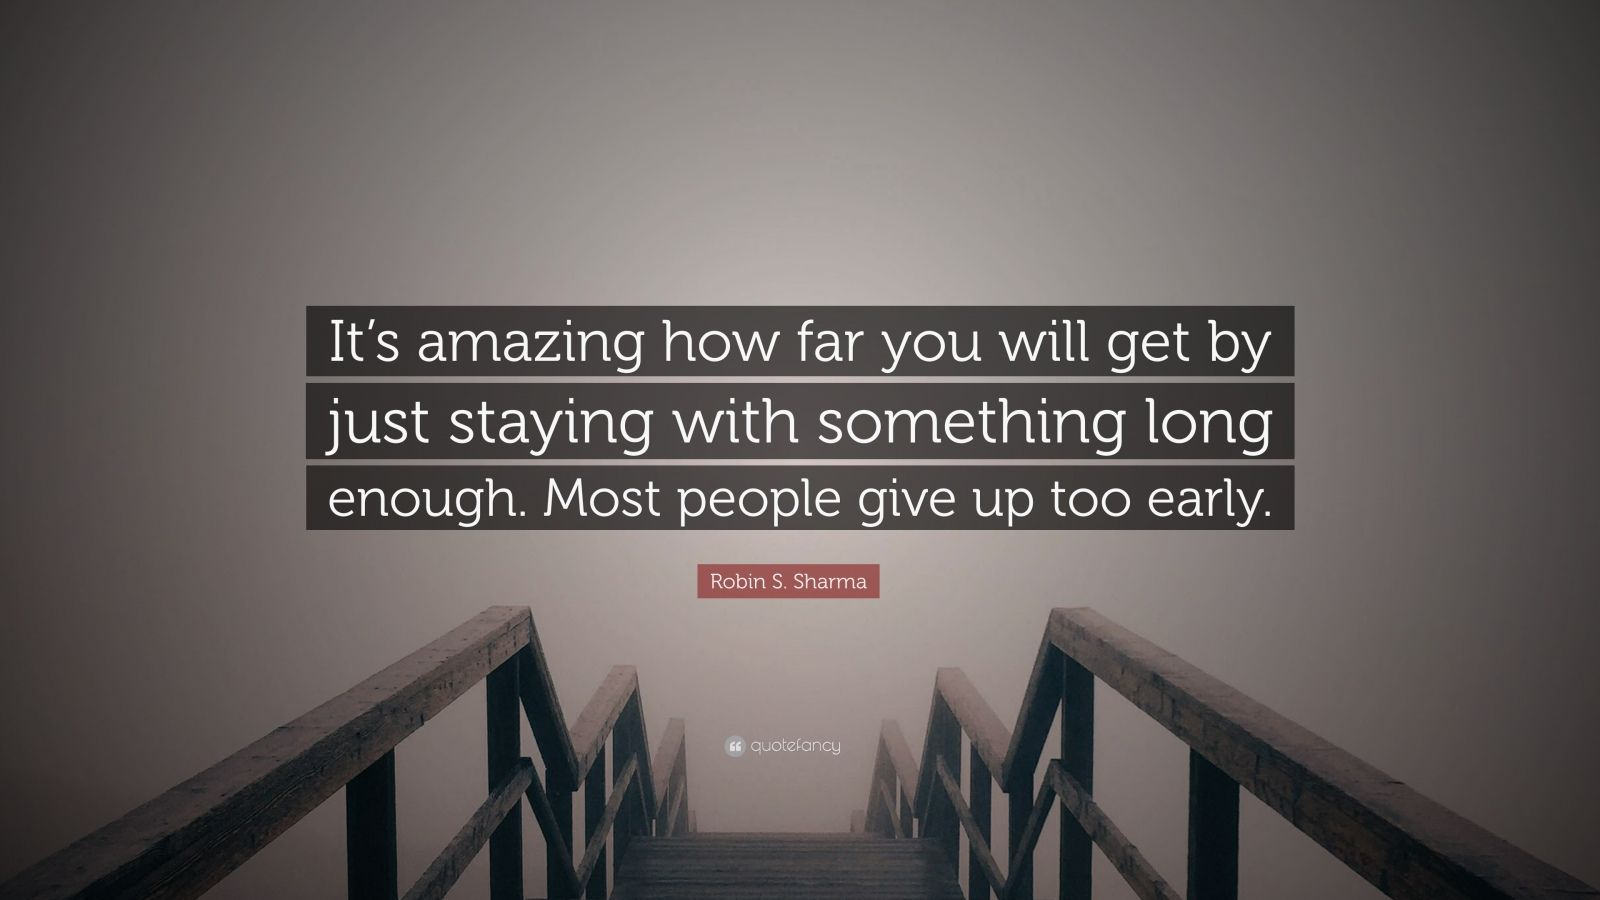 """Robin S. Sharma Quote: """"It's amazing how far you will get by just staying with something long enough. Most people give up too early."""""""